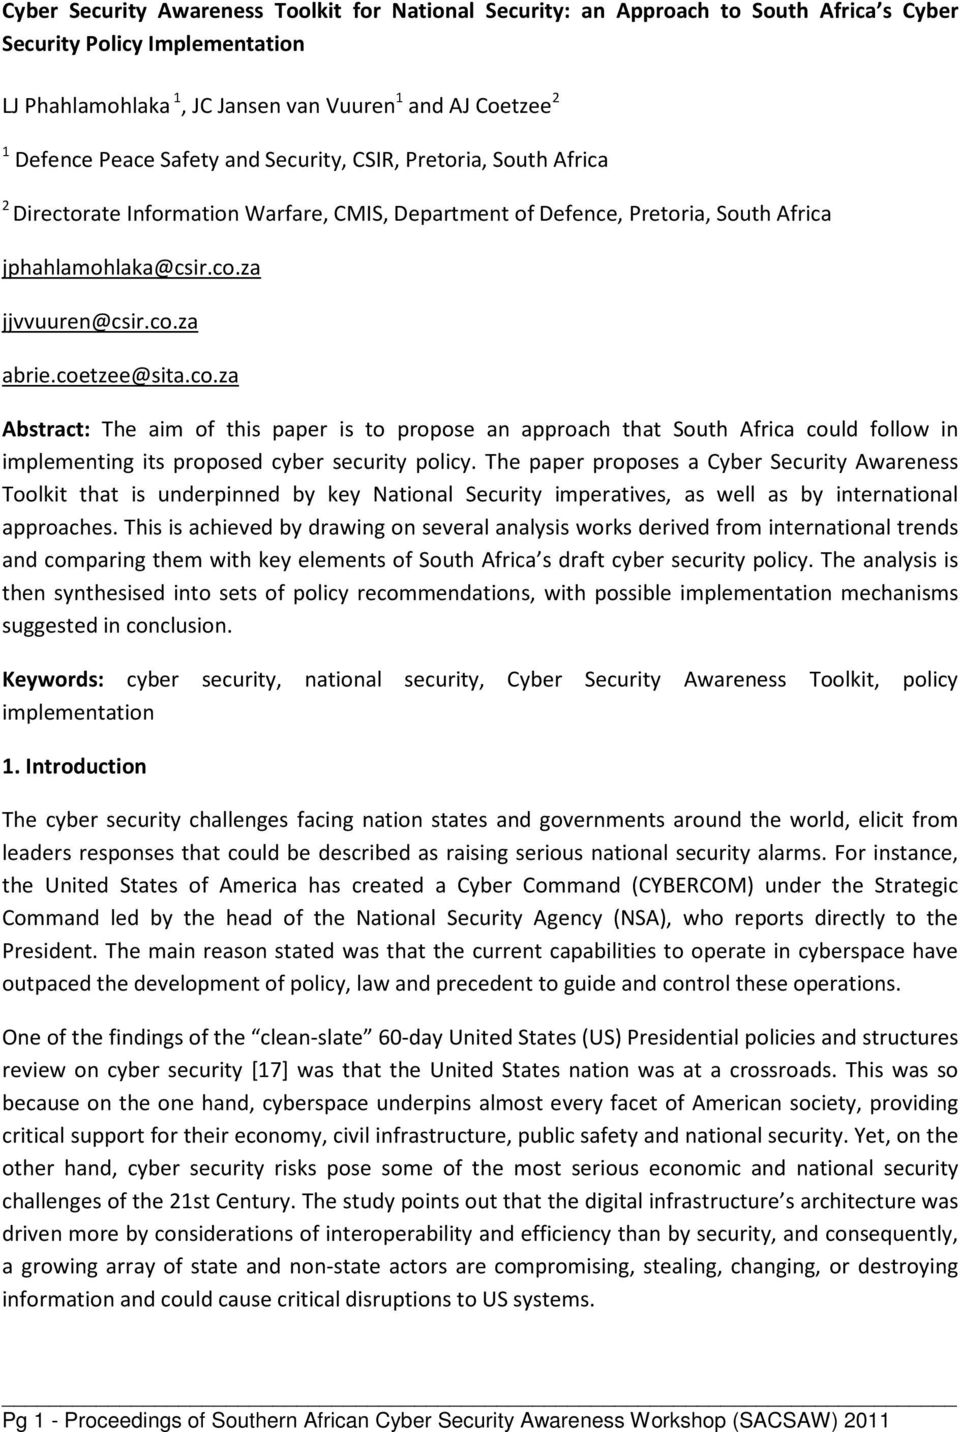 coetzee@sita.co.za Abstract: The aim of this paper is to propose an approach that South Africa could follow in implementing its proposed cyber security policy.